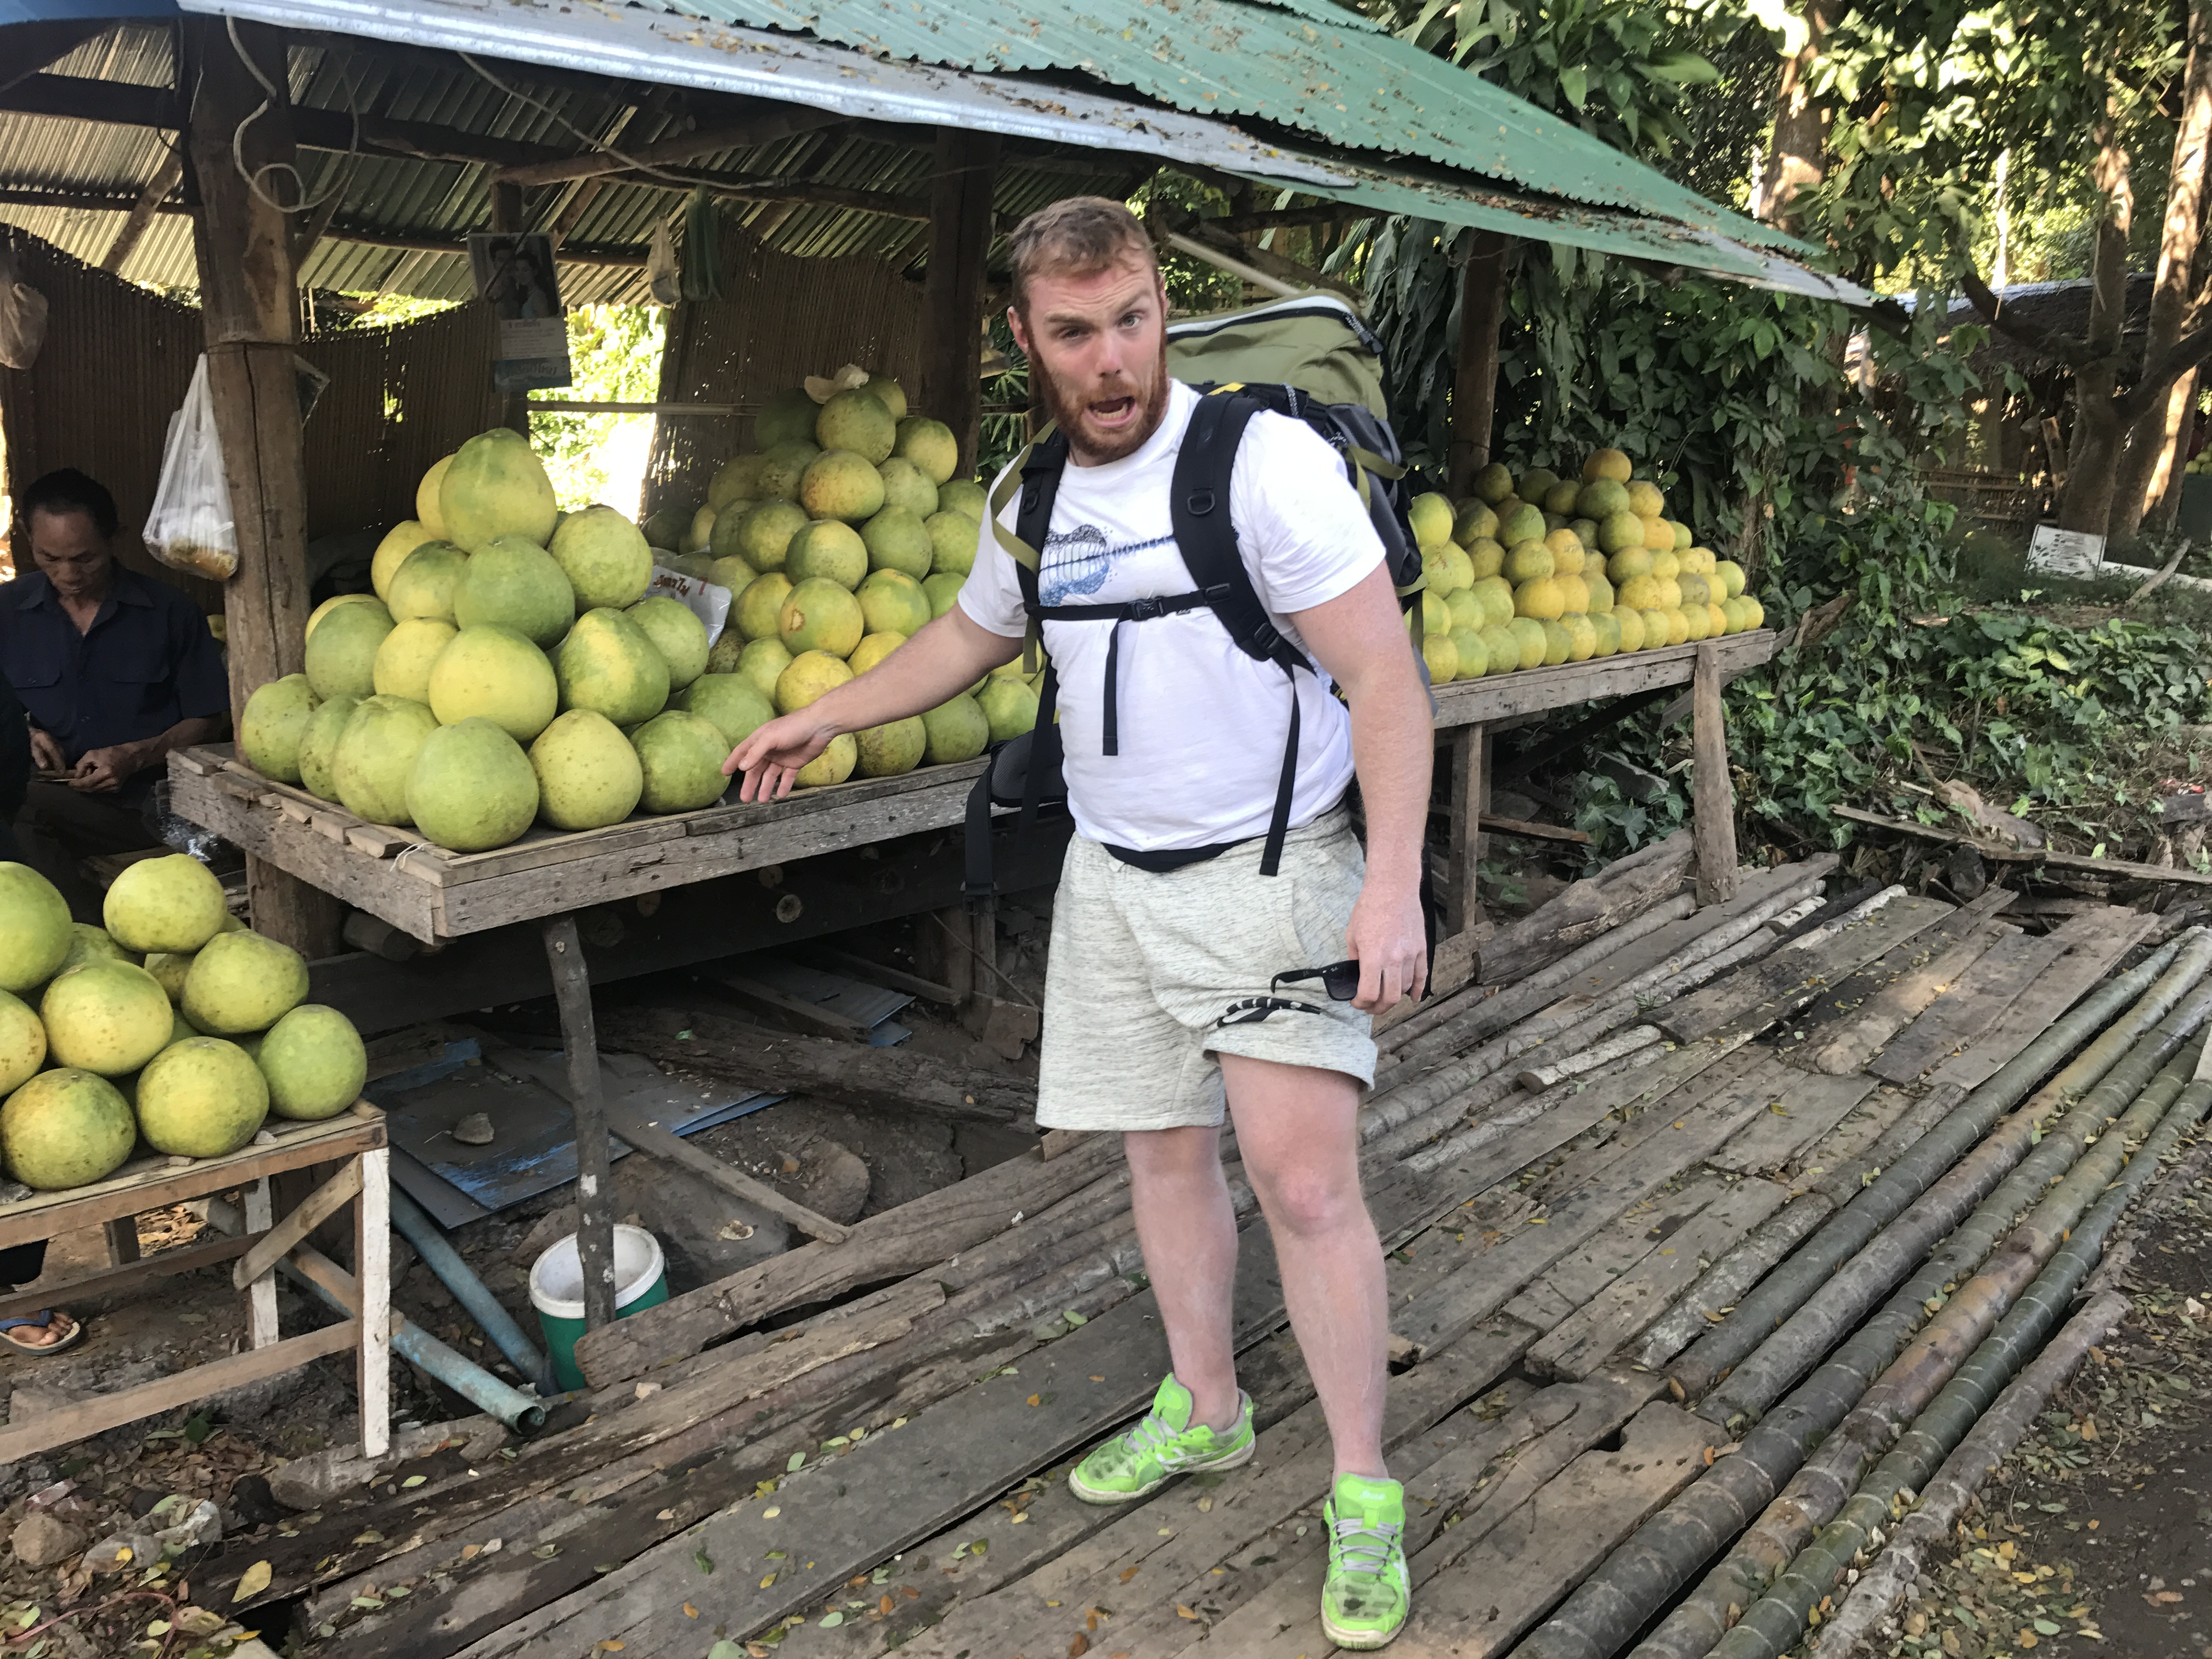 Andreas next to the fruit stool